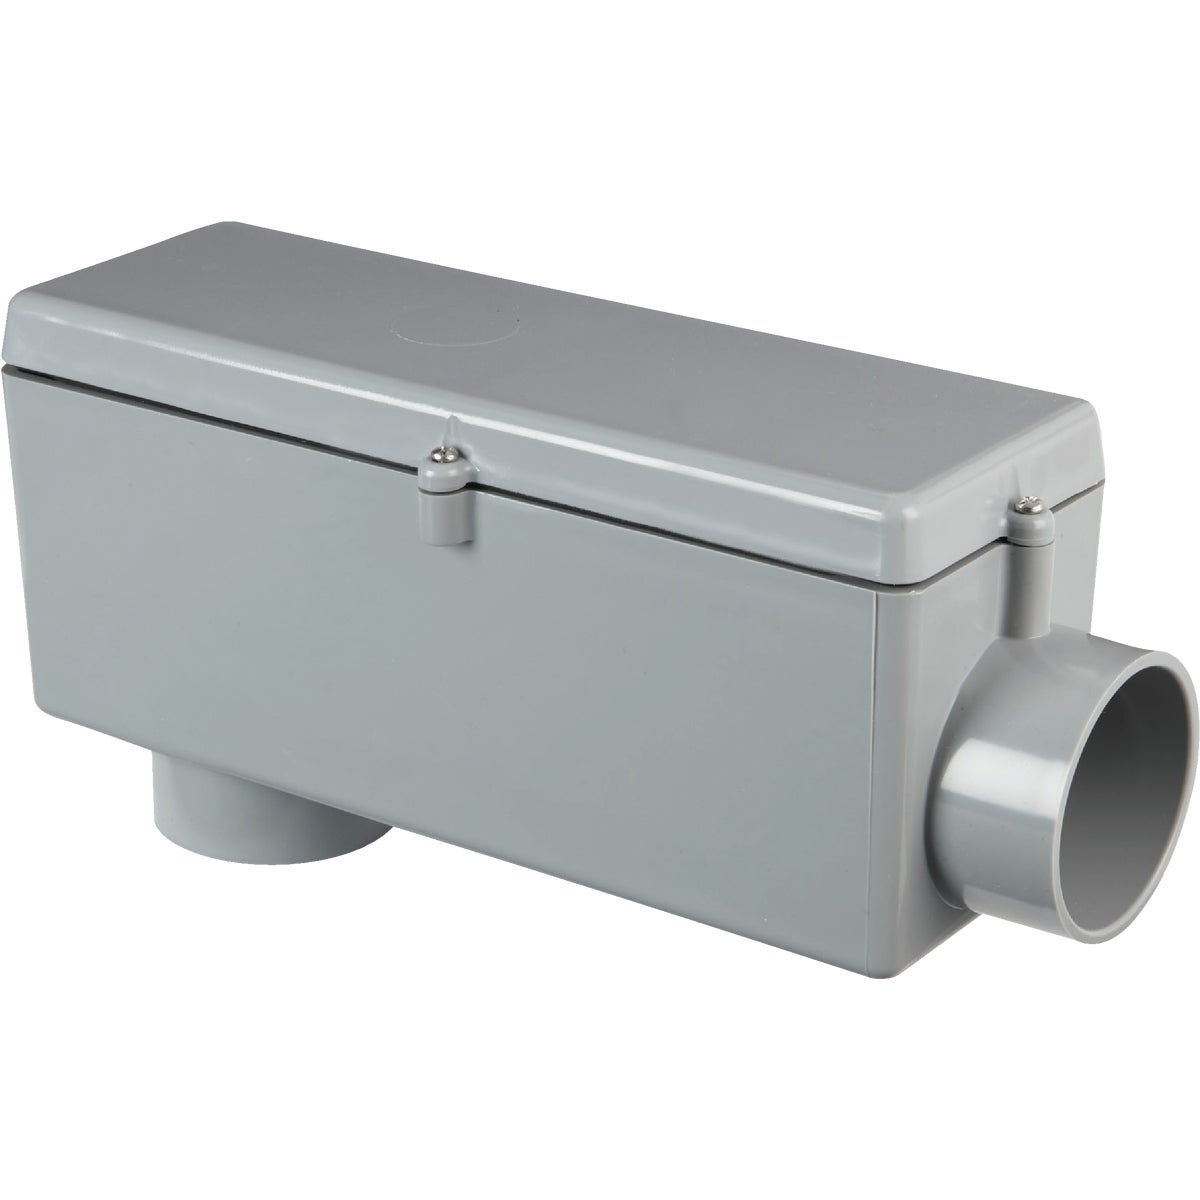 "2-1/2"" LB ACCESS FITTING - E986KCAR by Thomas & Betts"